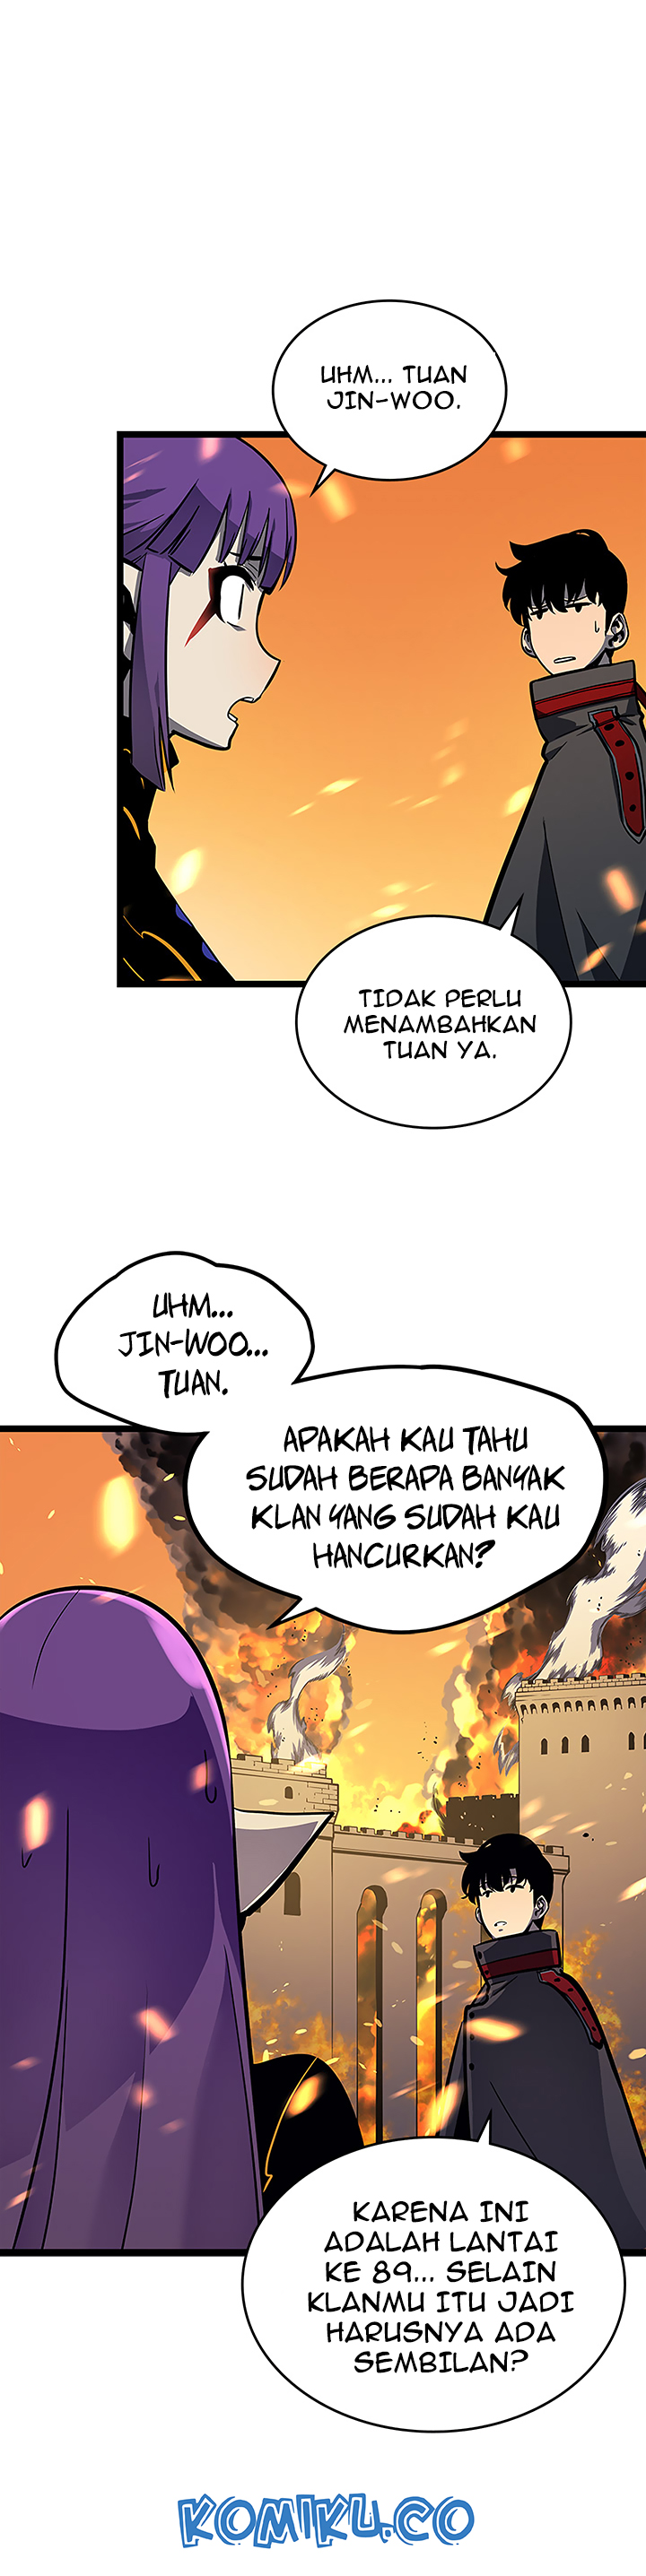 Solo Leveling Chapter 84 Indo gambar 25